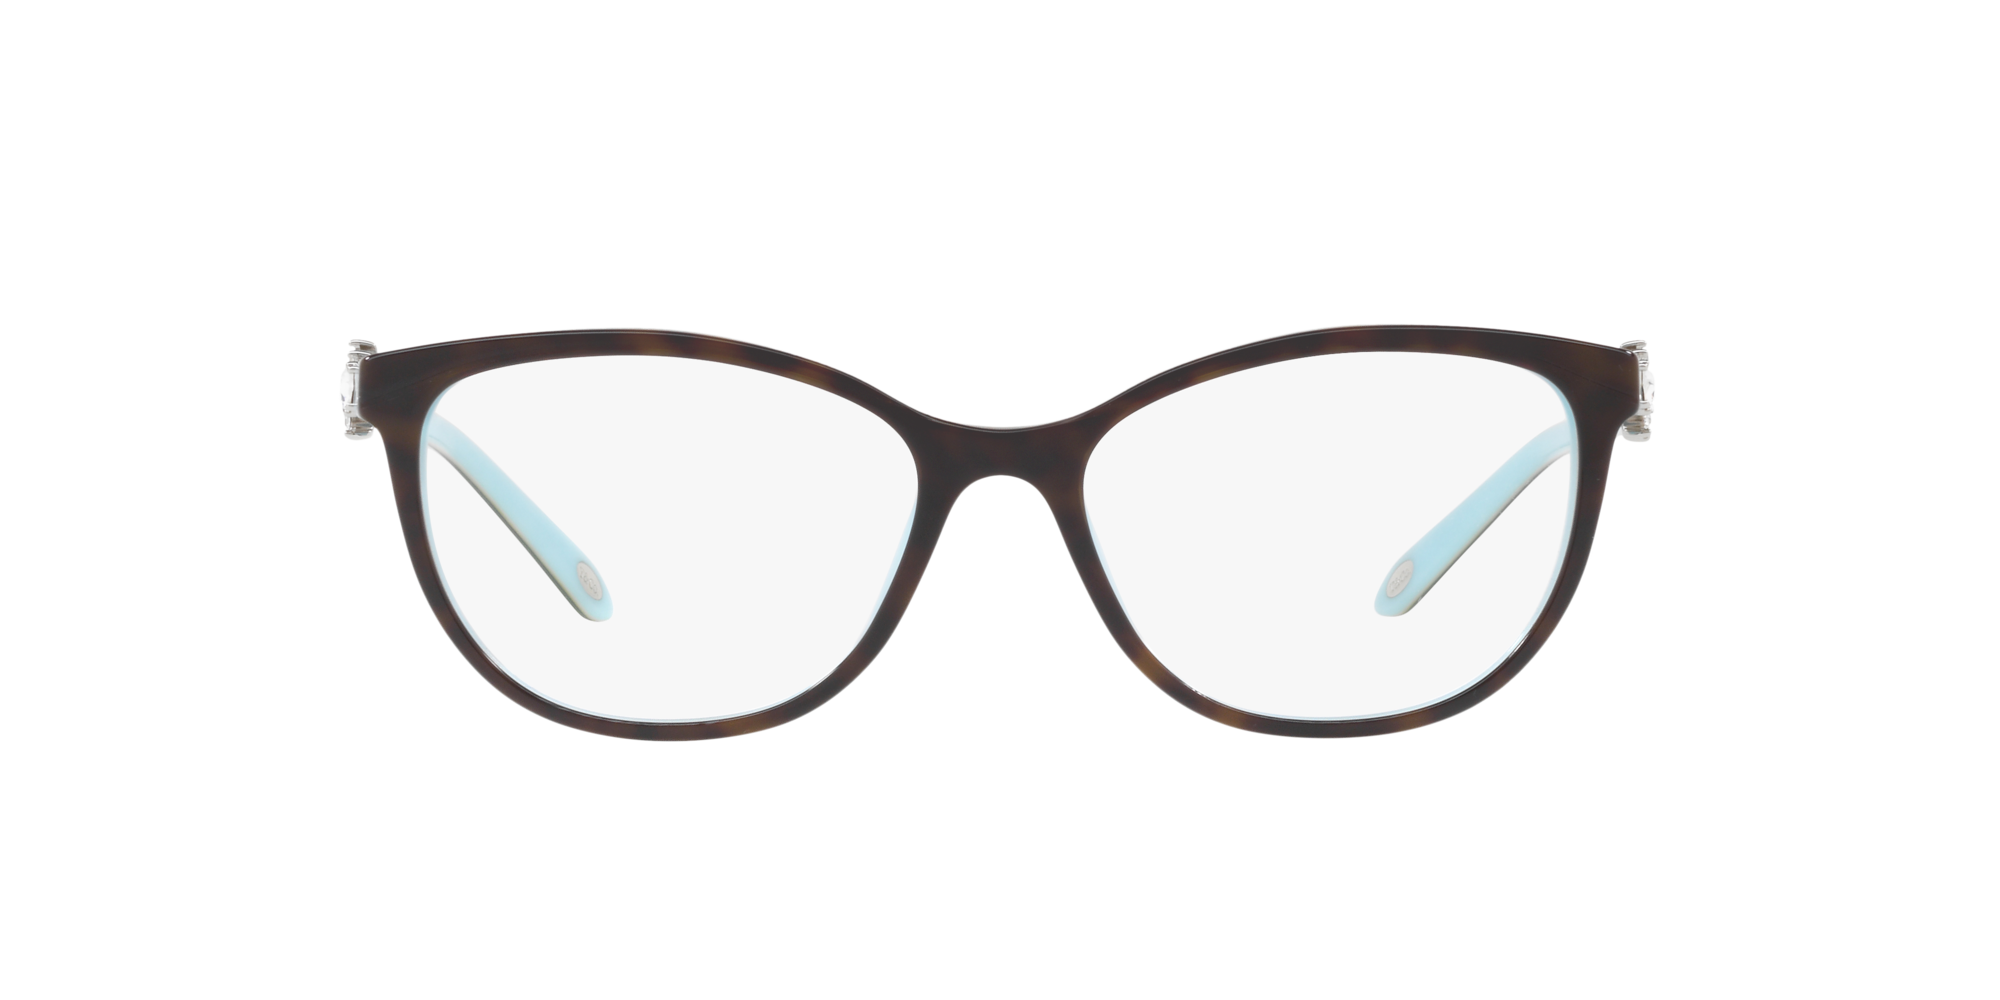 Image for TF2144HB from LensCrafters | Glasses, Prescription Glasses Online, Eyewear